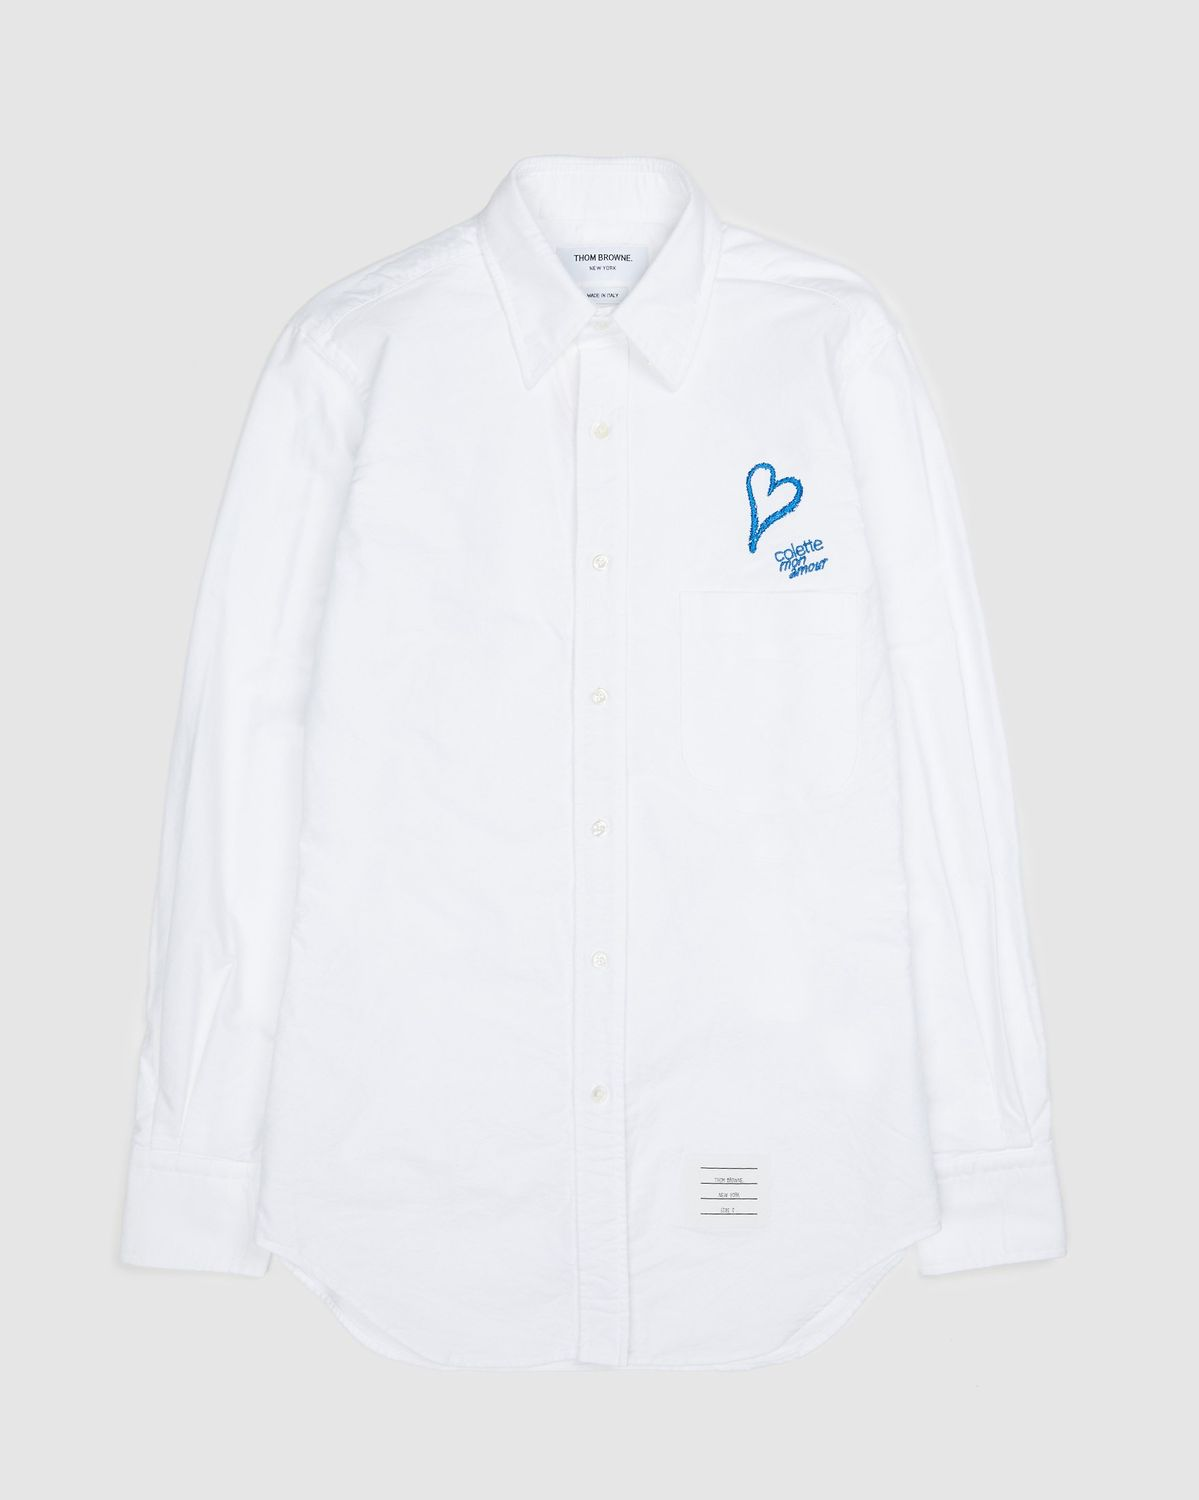 Colette Mon Amour x Thom Browne - White Heart Classic Shirt - Image 1